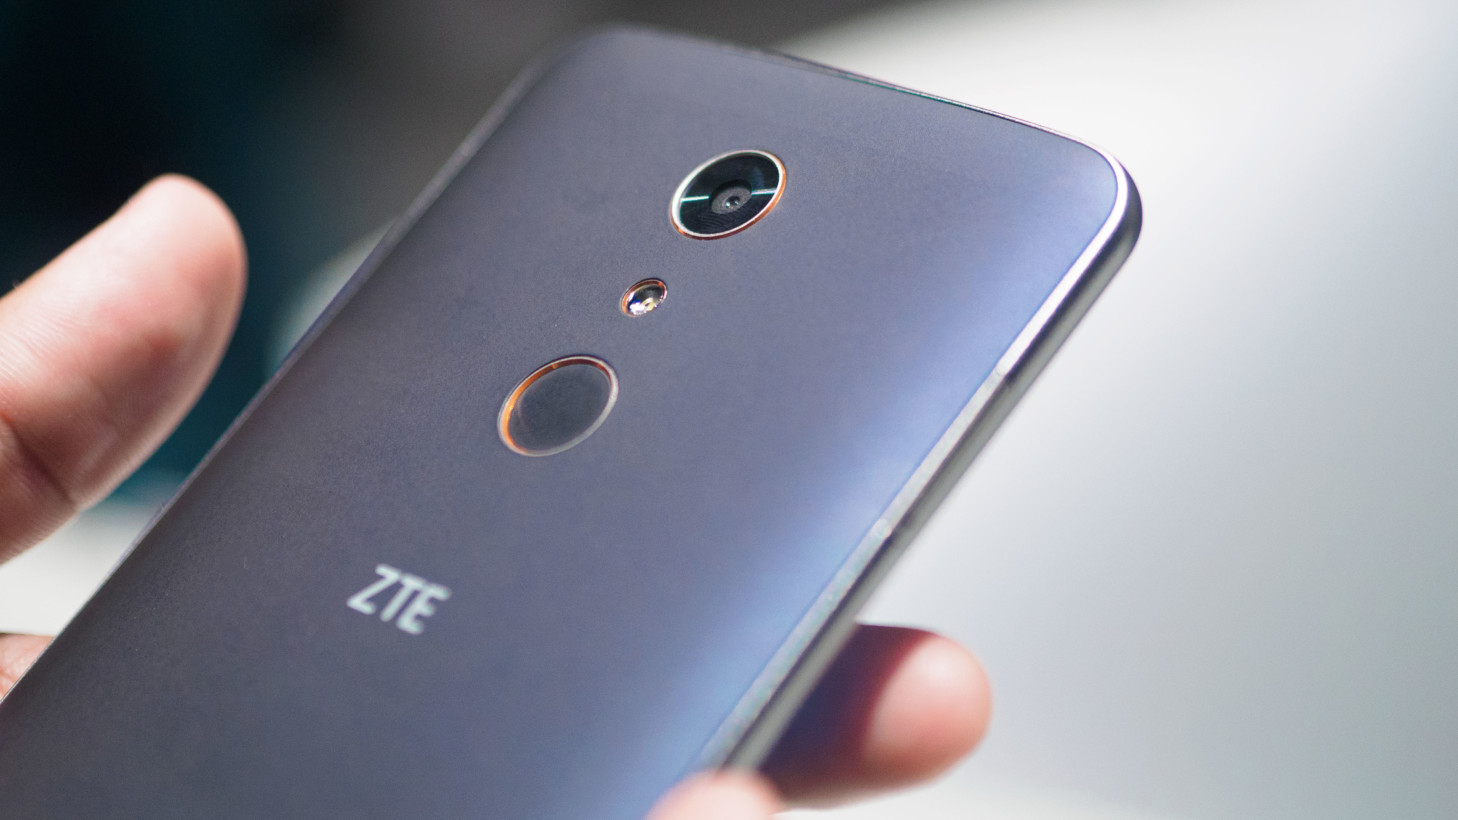 zte zmax pro phone would good